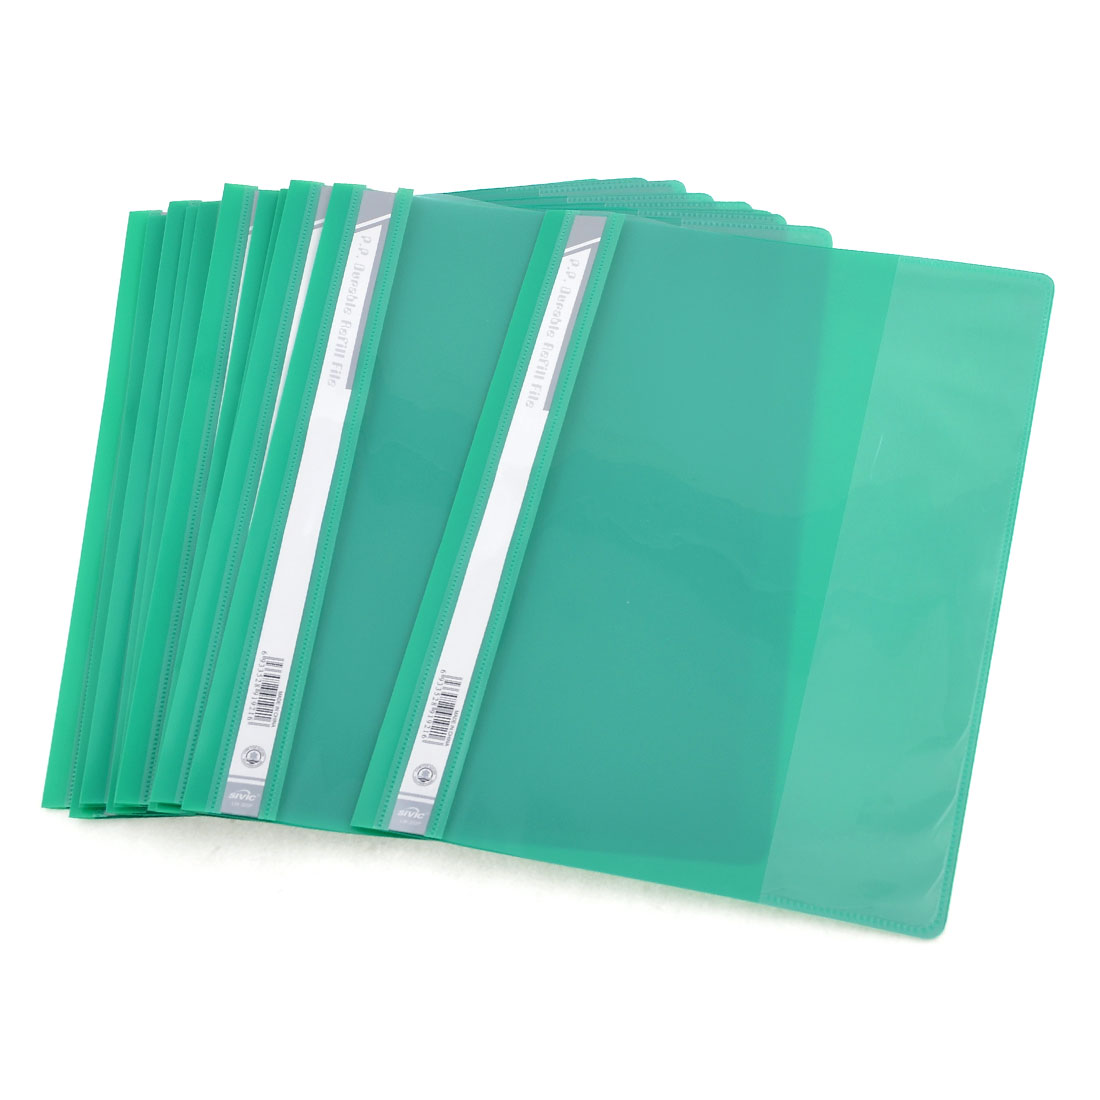 12 Pcs Size A4 Paper File Document Case Conference Folder Green Clear